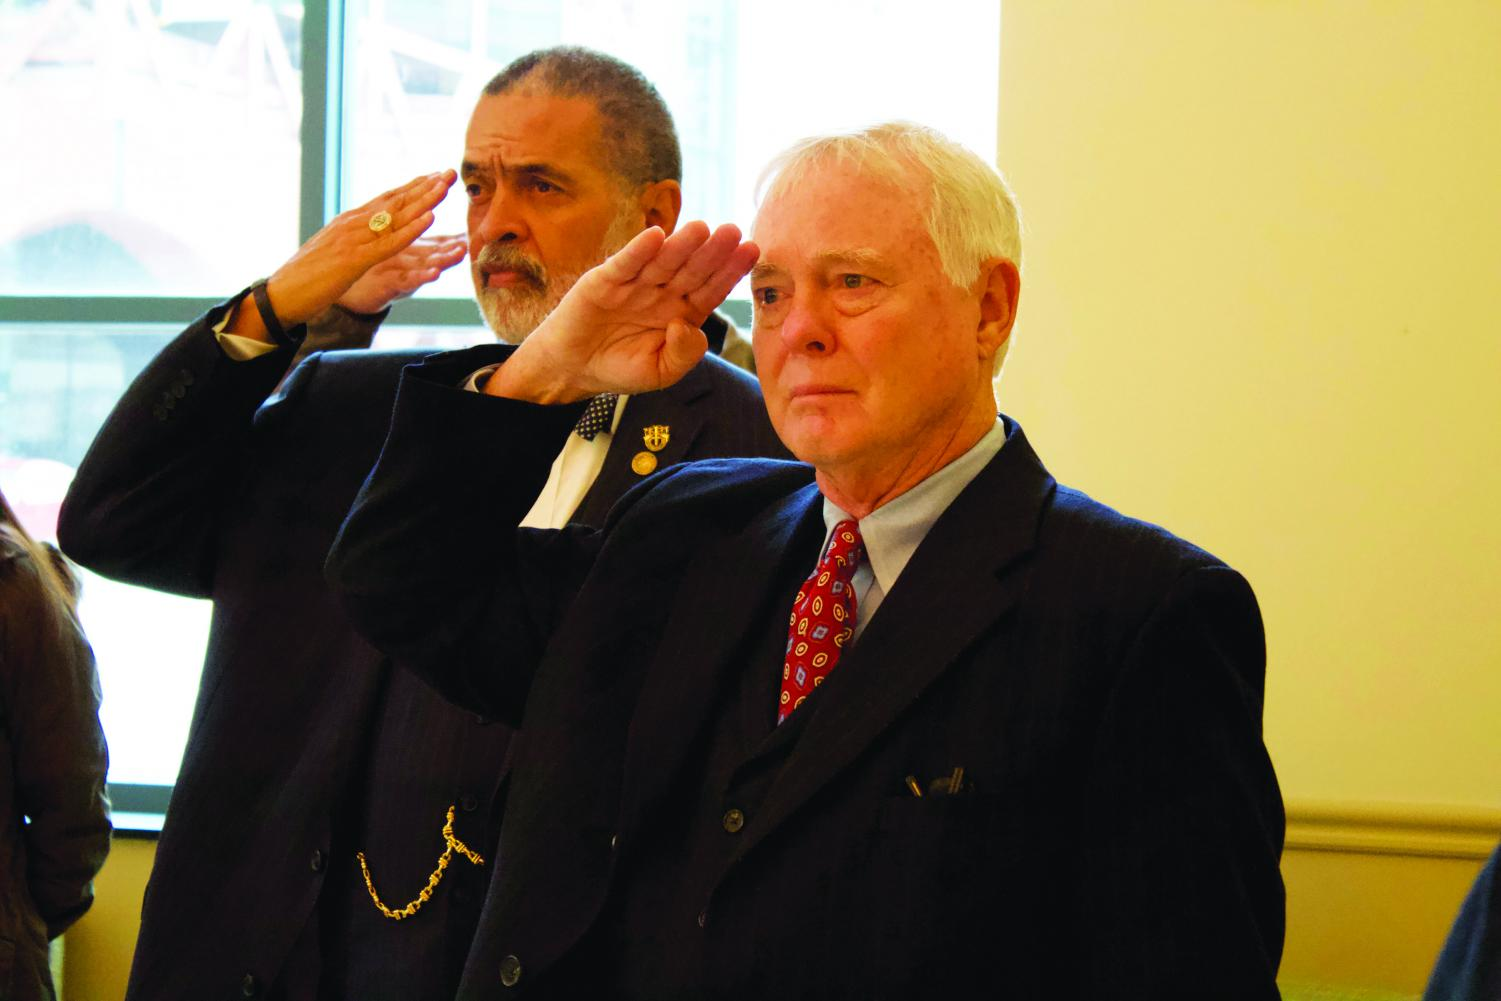 Dr. Gregory Rogers (left) and Dr. George Bromall (right) salute to the American flag as the National Anthem plays during a Veteran's Day service in LH Lobby on Nov. 11.